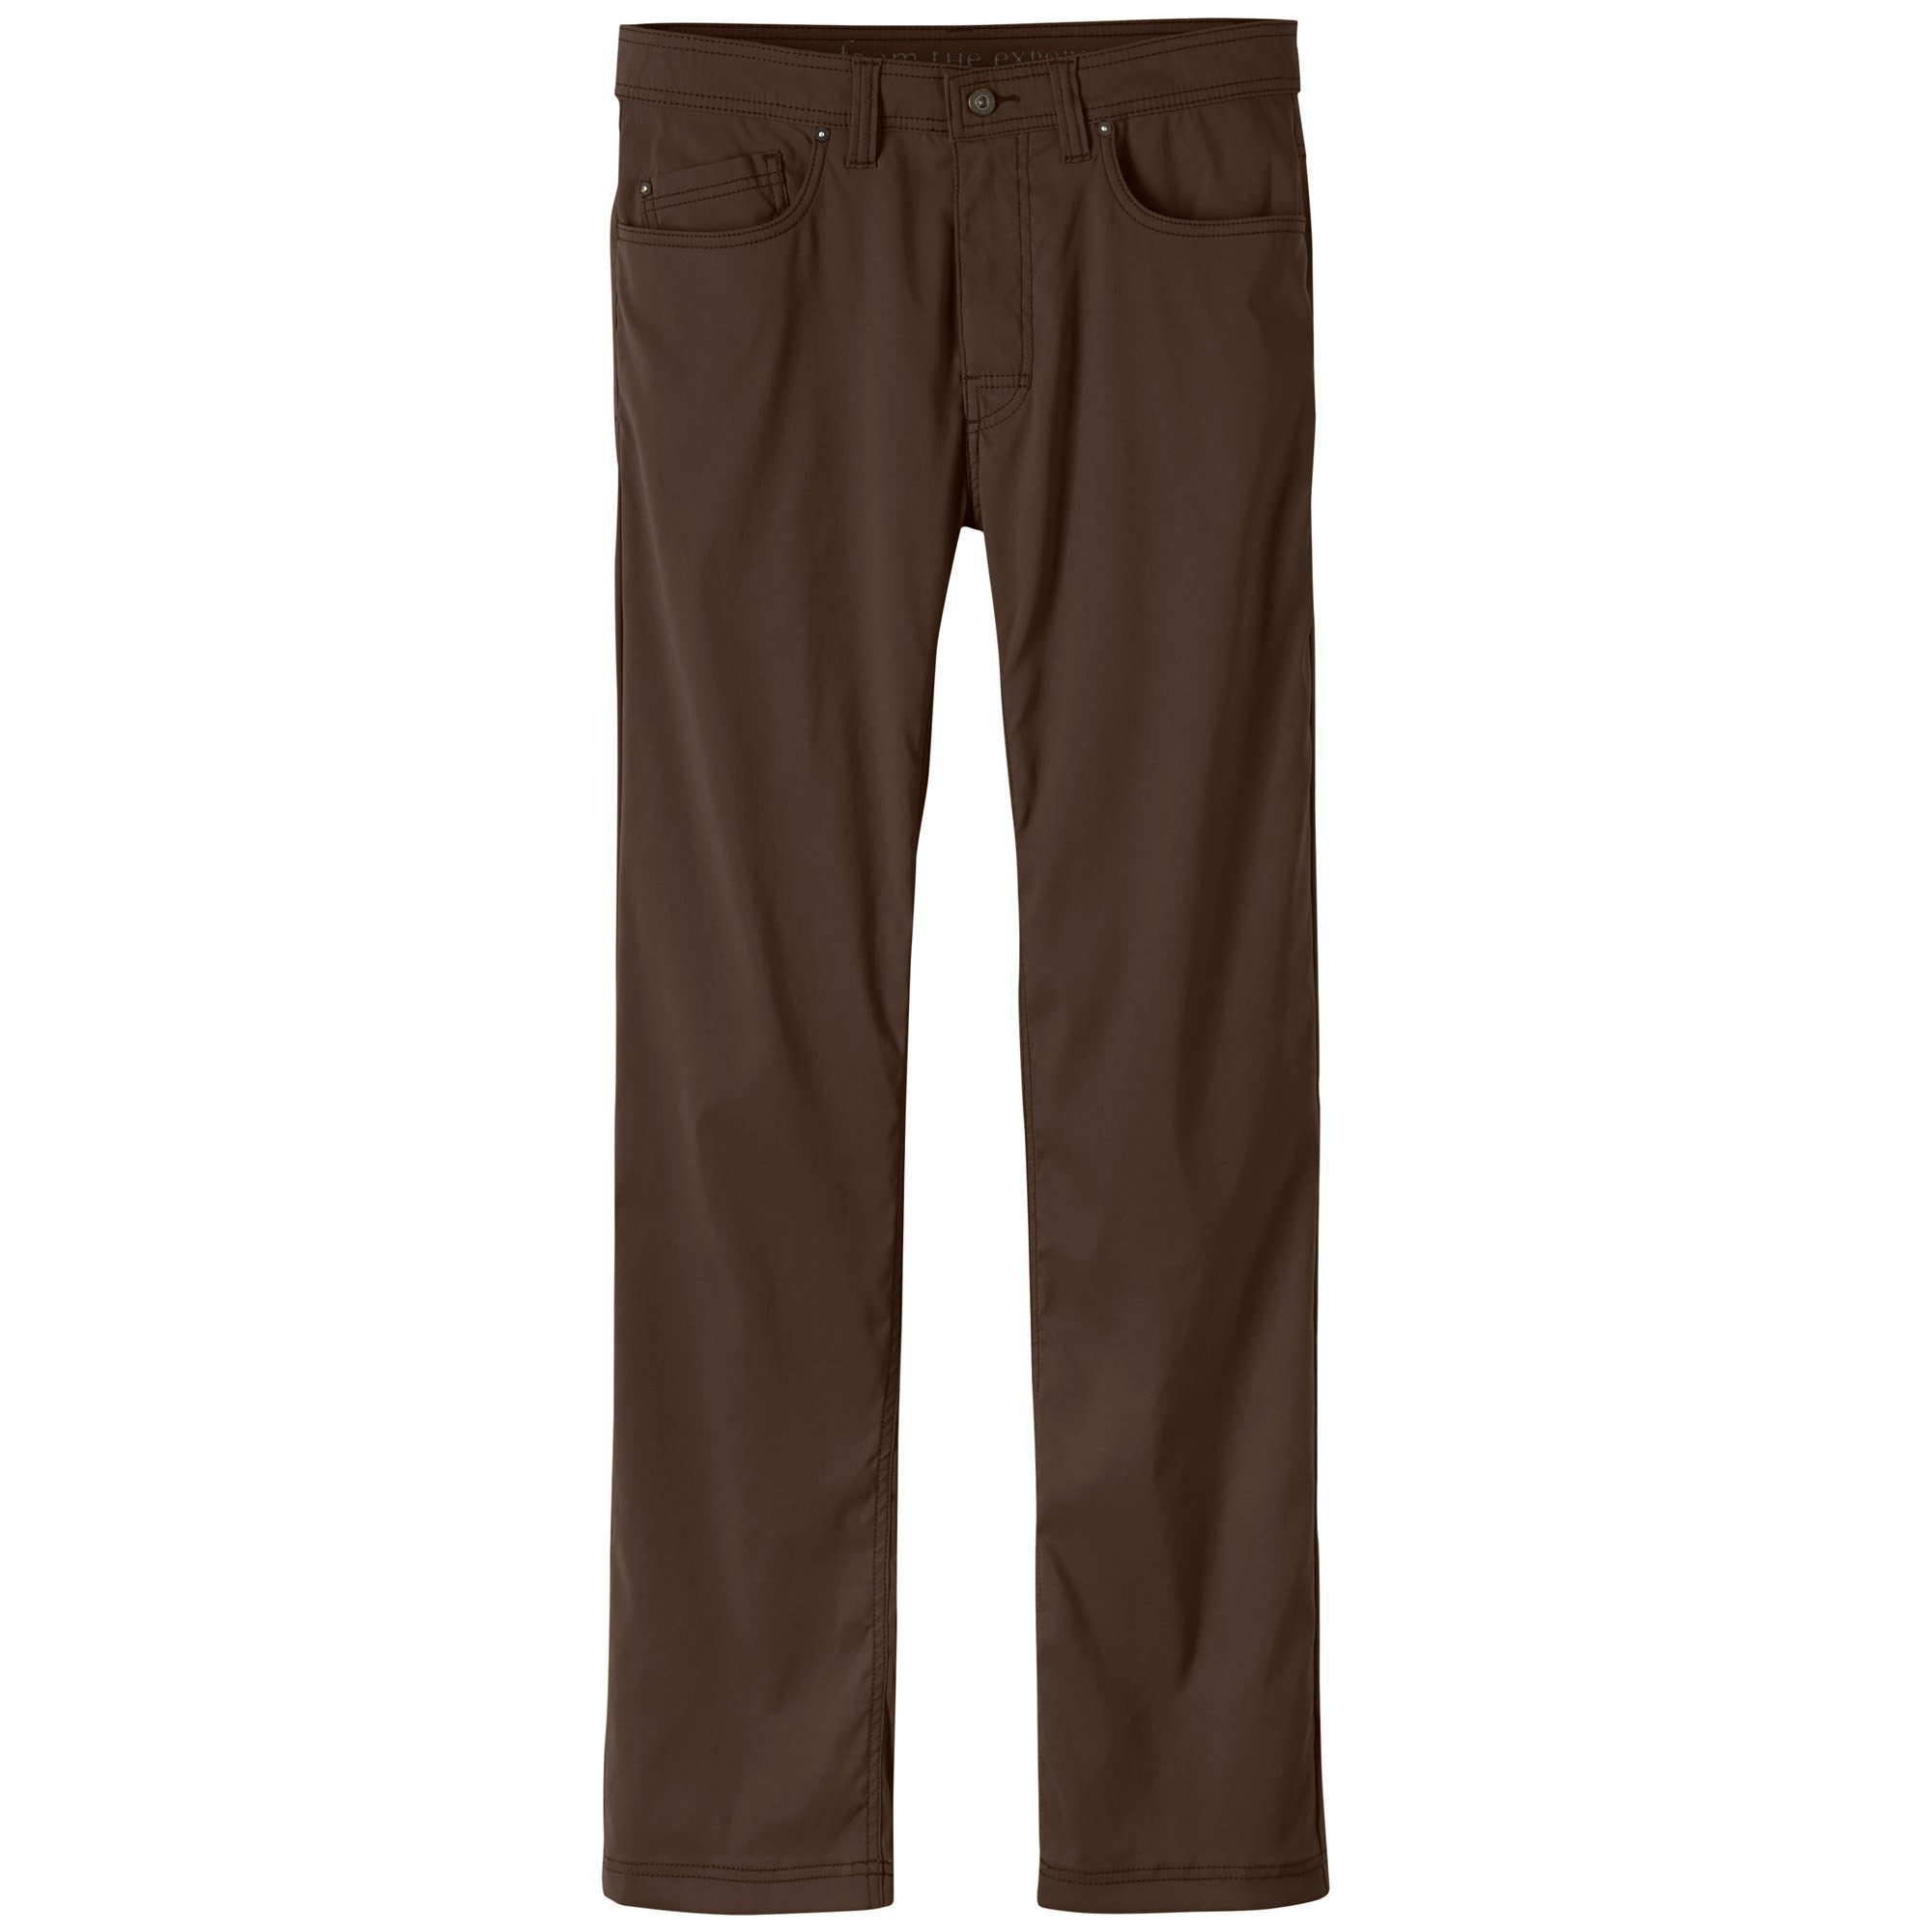 prAna Men's Brion 32'''' Inseam Athletic Pants, Size 28, Coffee Bean